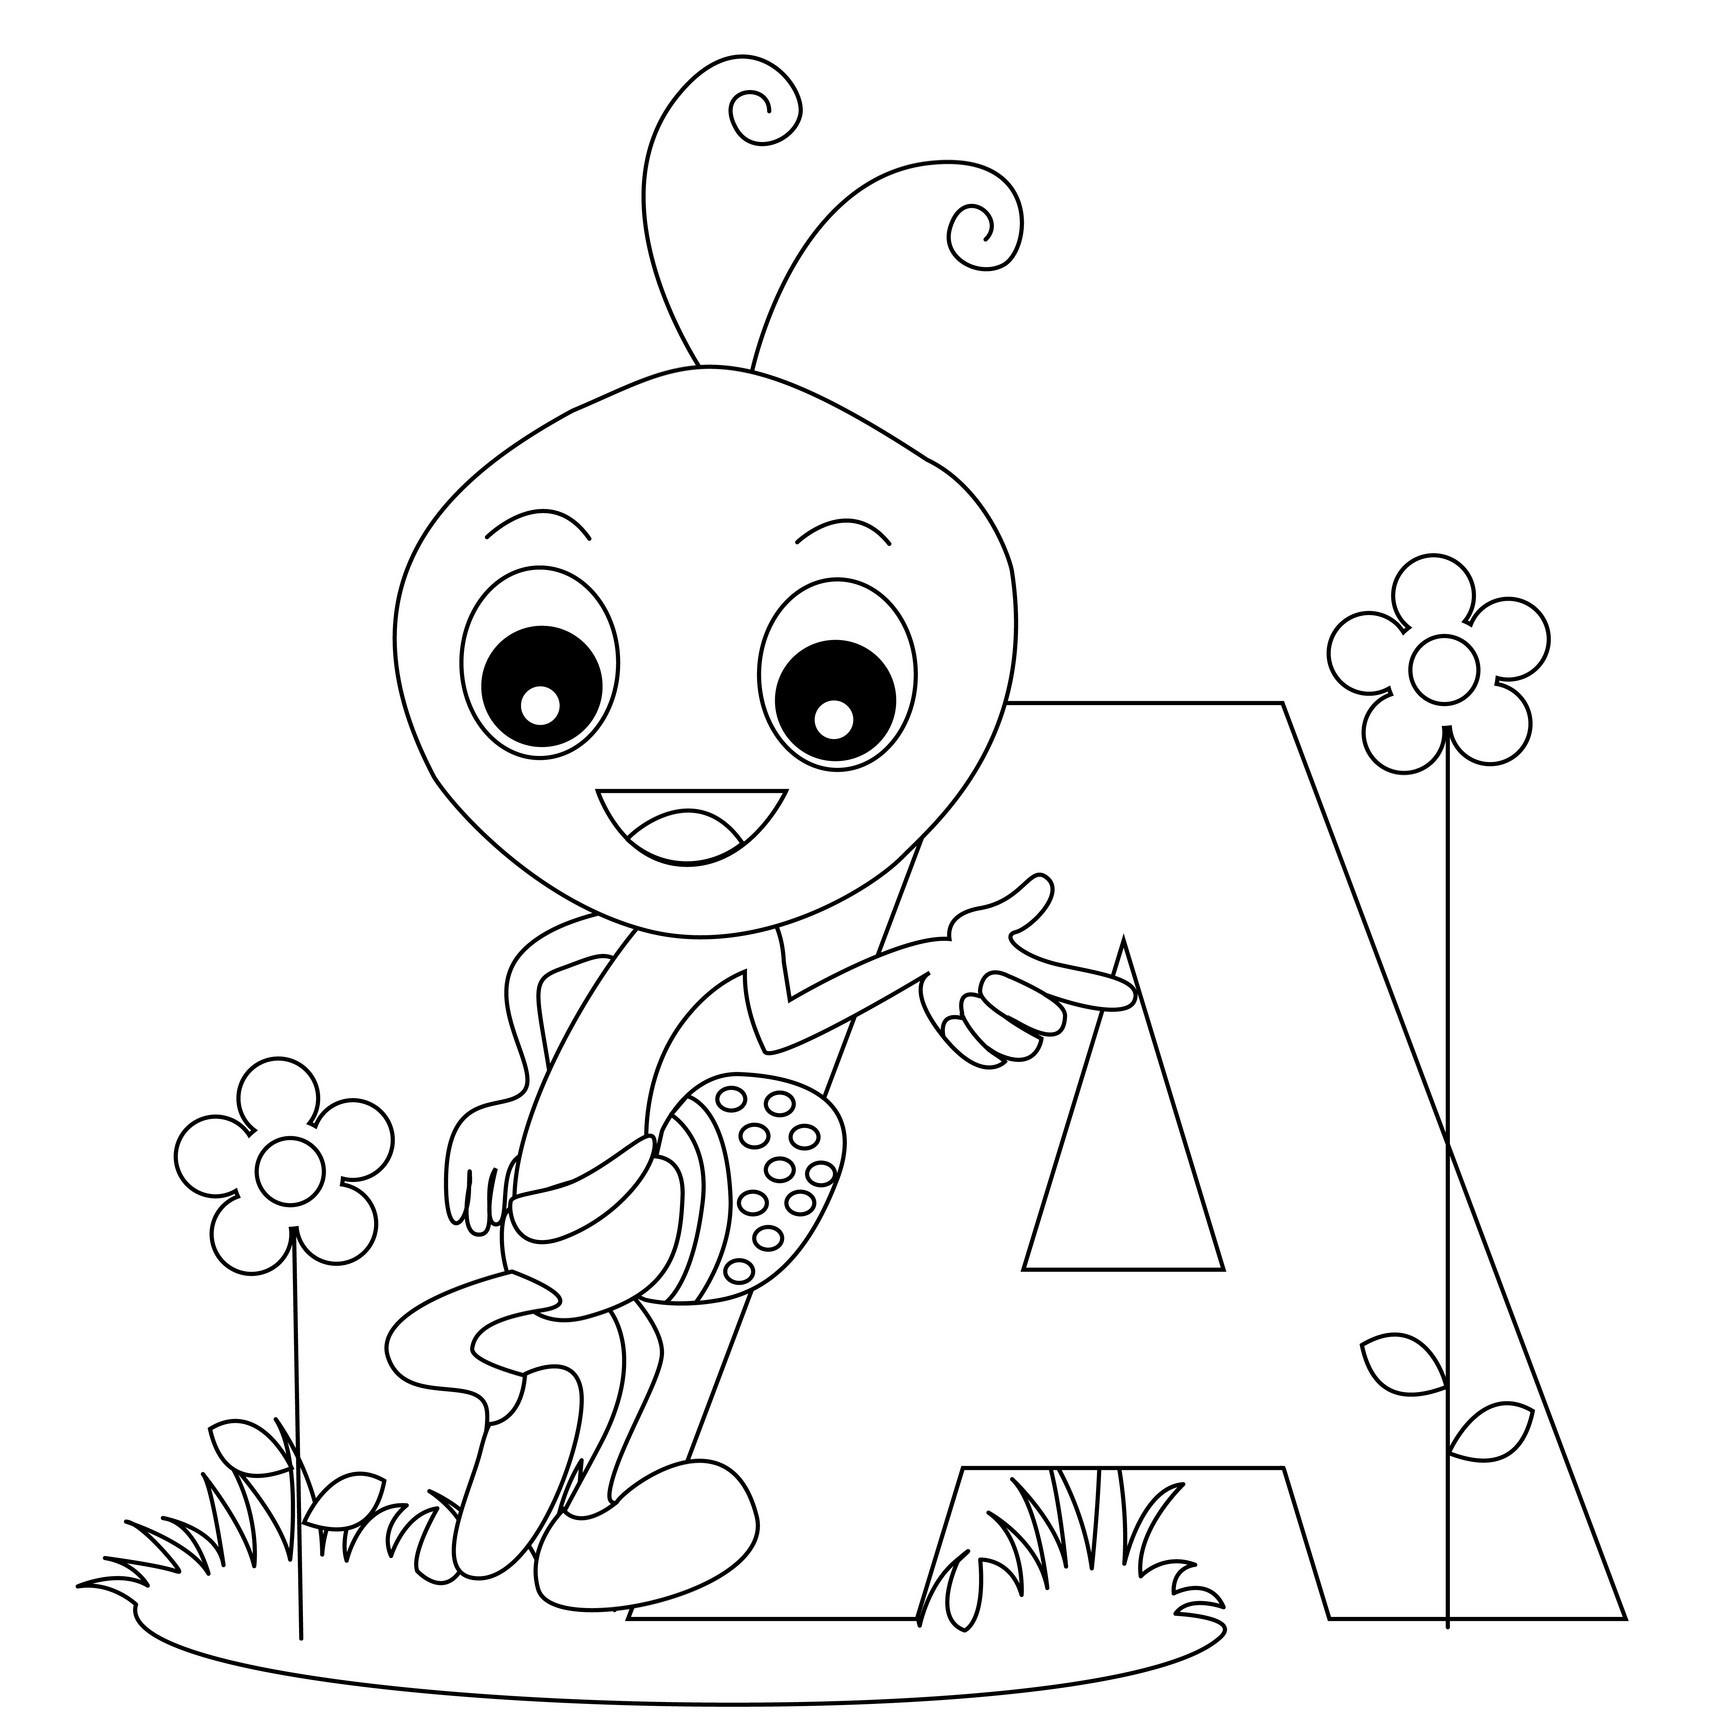 coloring worksheets abc alphabet coloring pages mr printables abc coloring worksheets